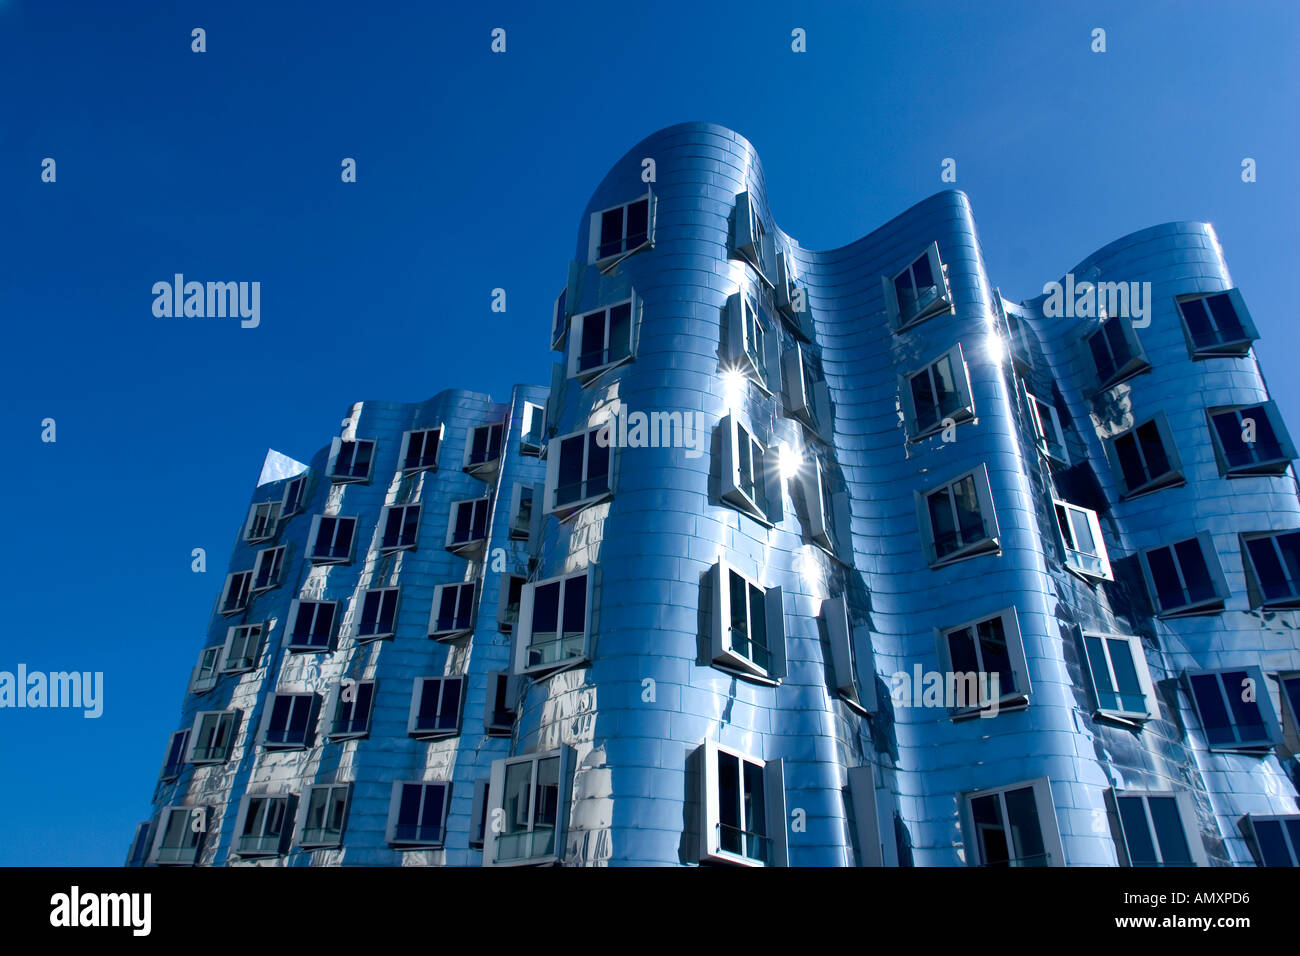 The Neuer Zollhof building by Frank Gehry at the Medienhafen Media Harbour, Dusseldorf, Germany. - Stock Image